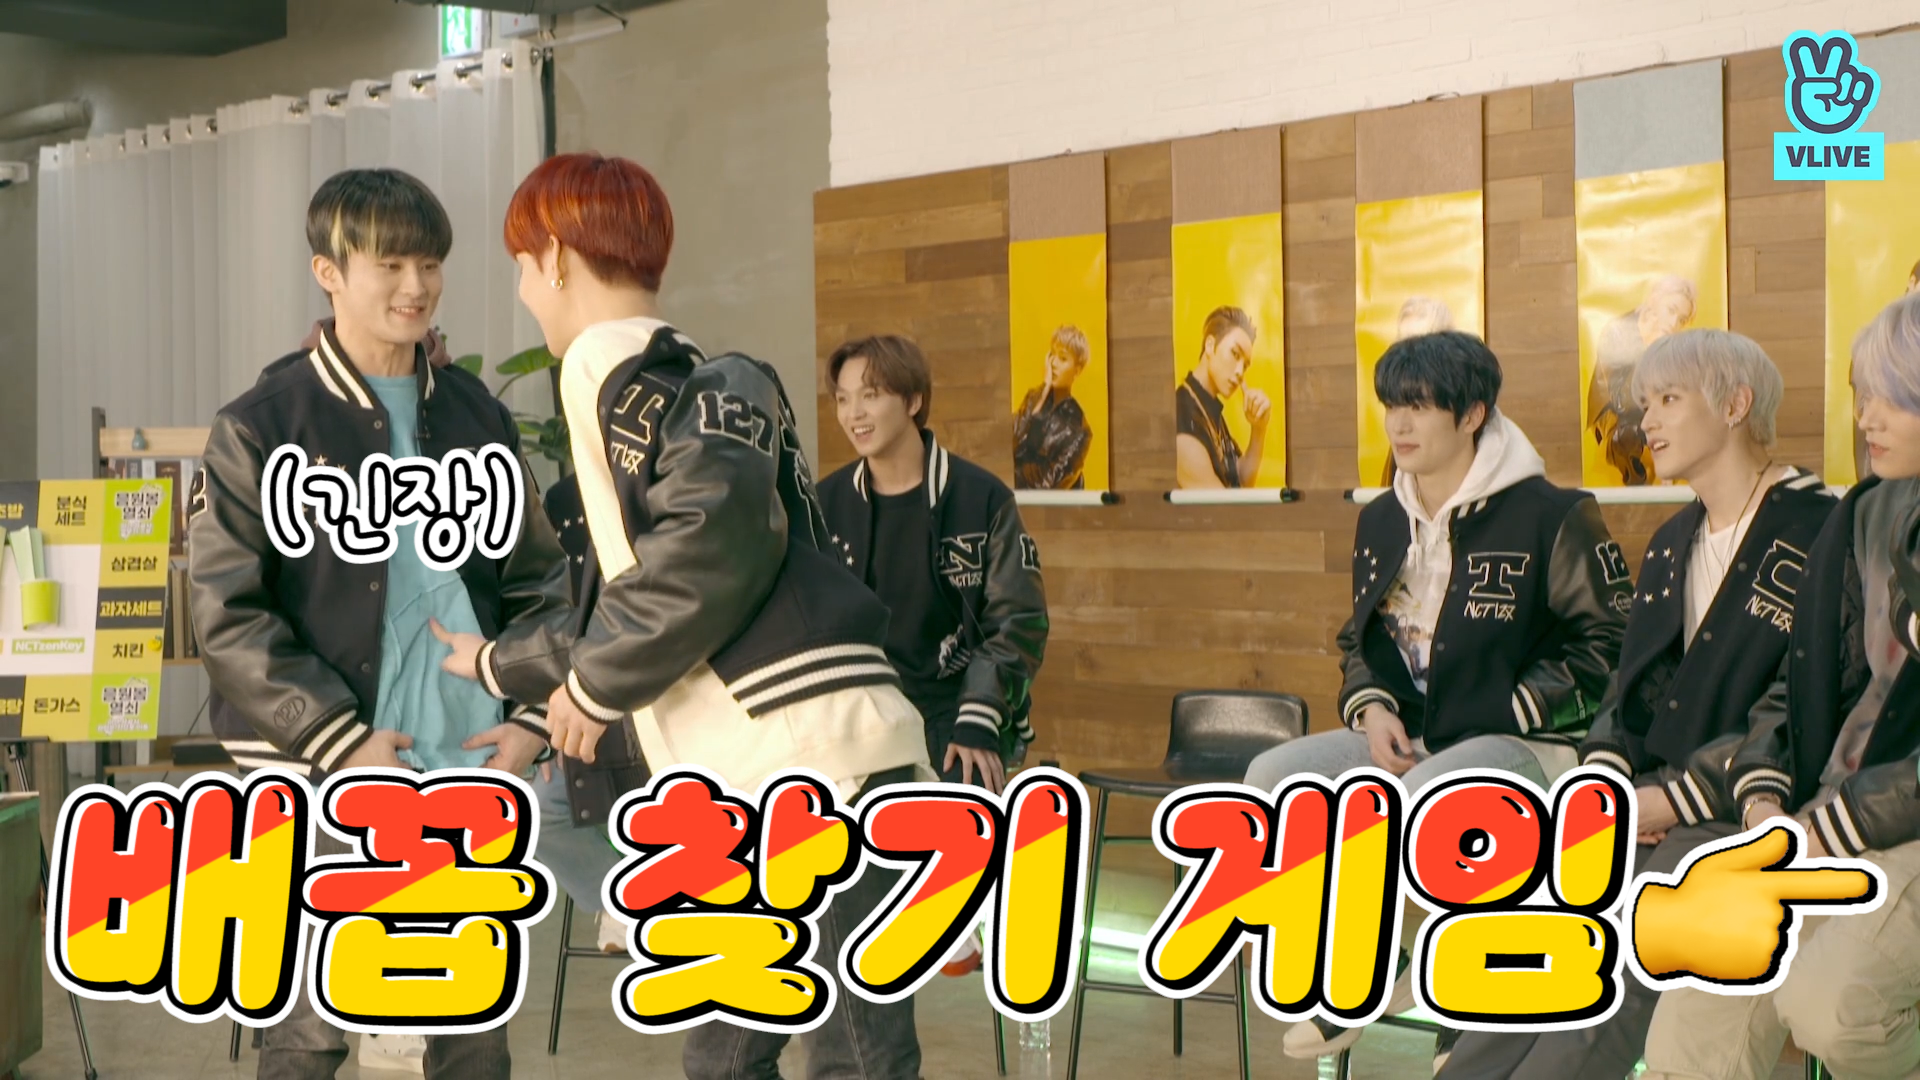 [NCT] !!배꼽주의!! 일이칠 역대급 👉배꼽찾기👈에 내 배꼽은 집나간지 오래..😆 (NCT 127 playing belly button finding game)